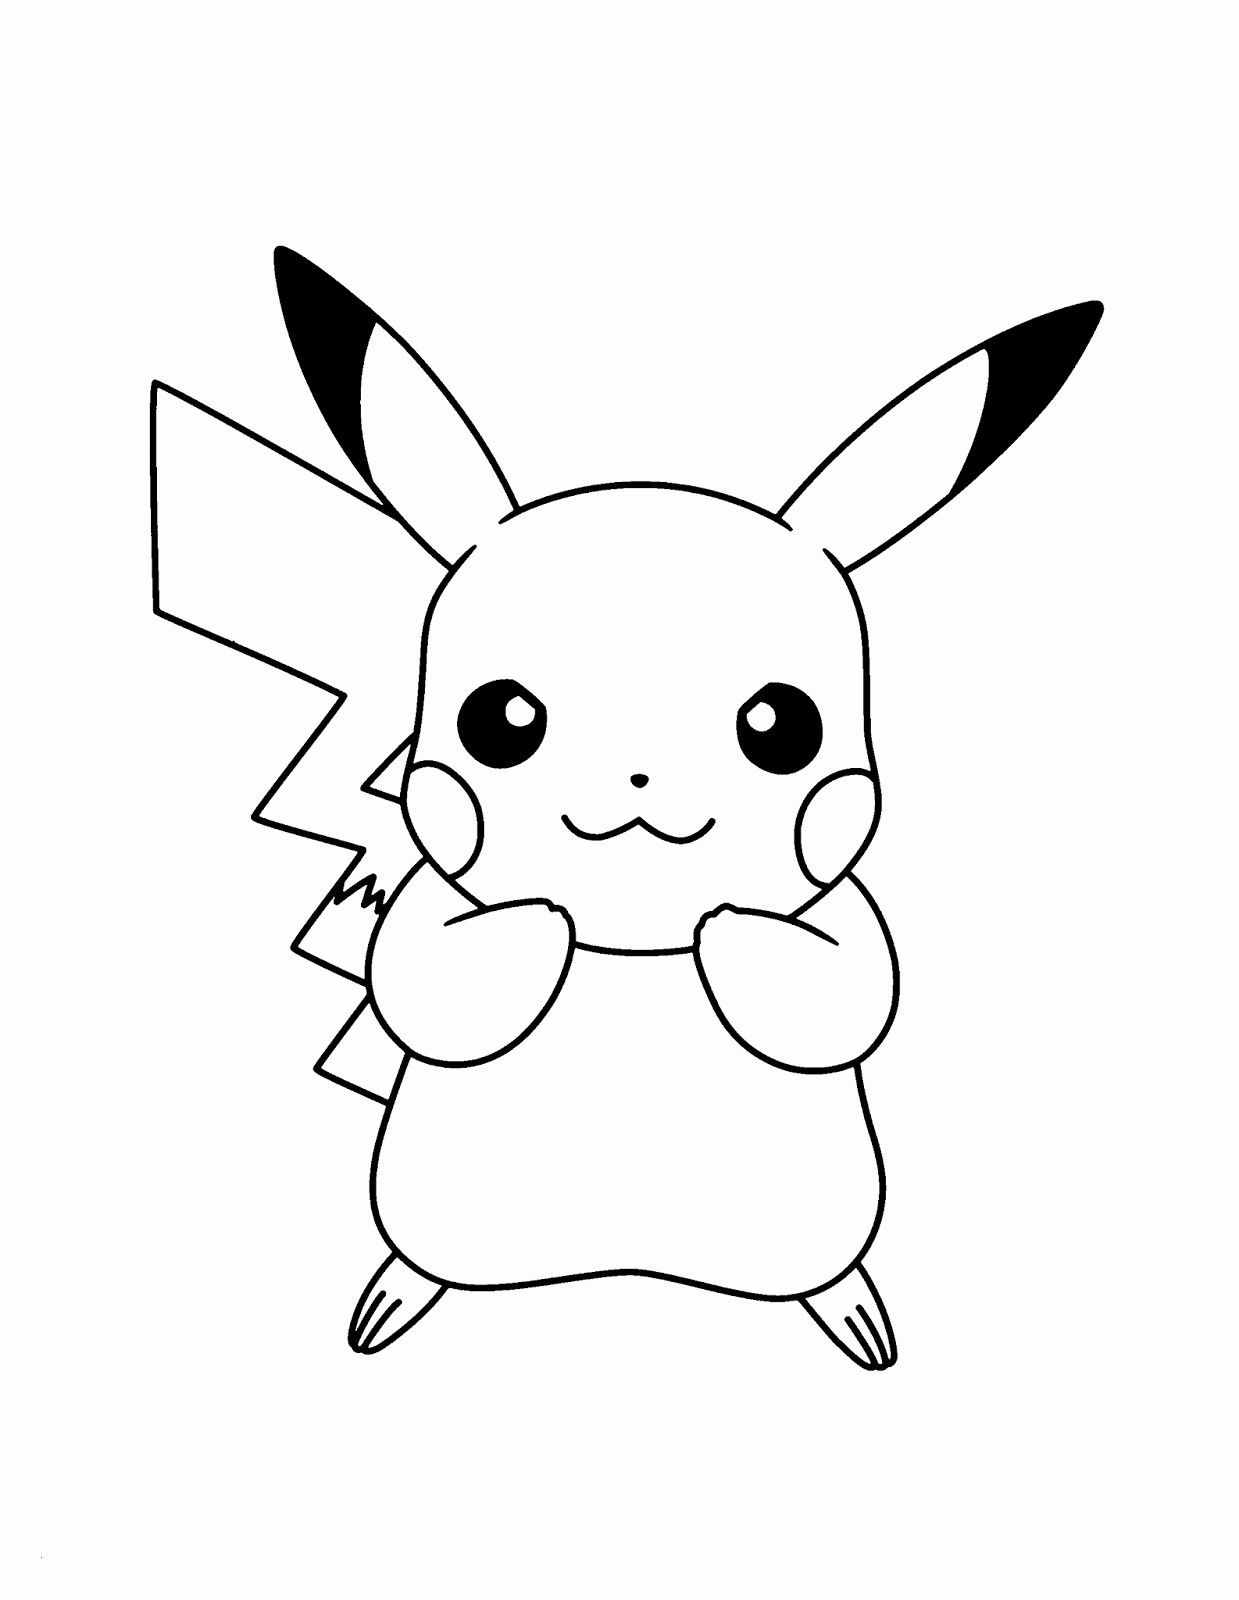 Pin By Carin Renzenbrink On Design Pikachu Coloring Page Pikachu Drawing Pokemon Coloring Pages